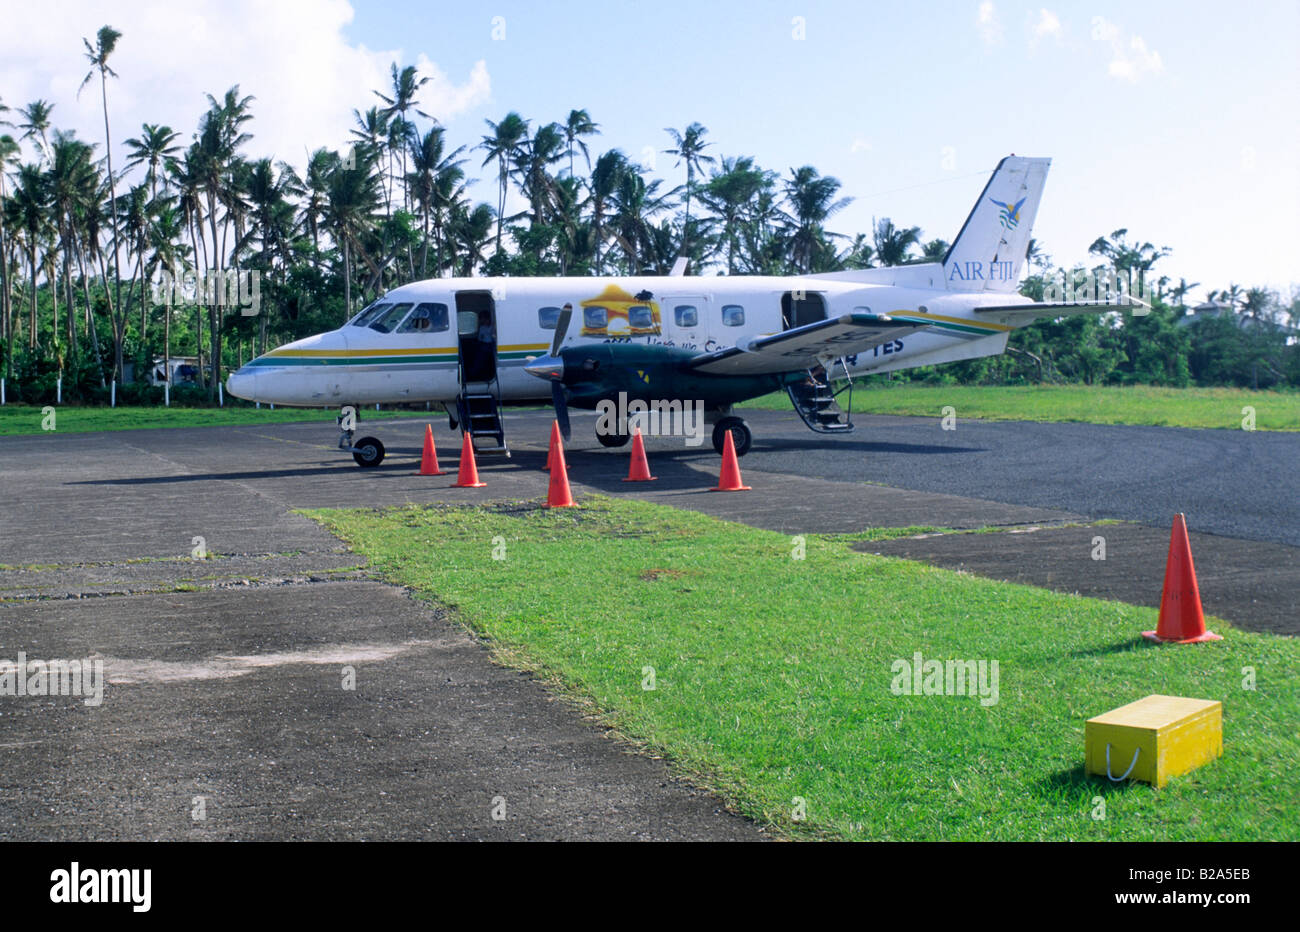 Airport and Airplane Taveuni Fiji Islands Stock Photo